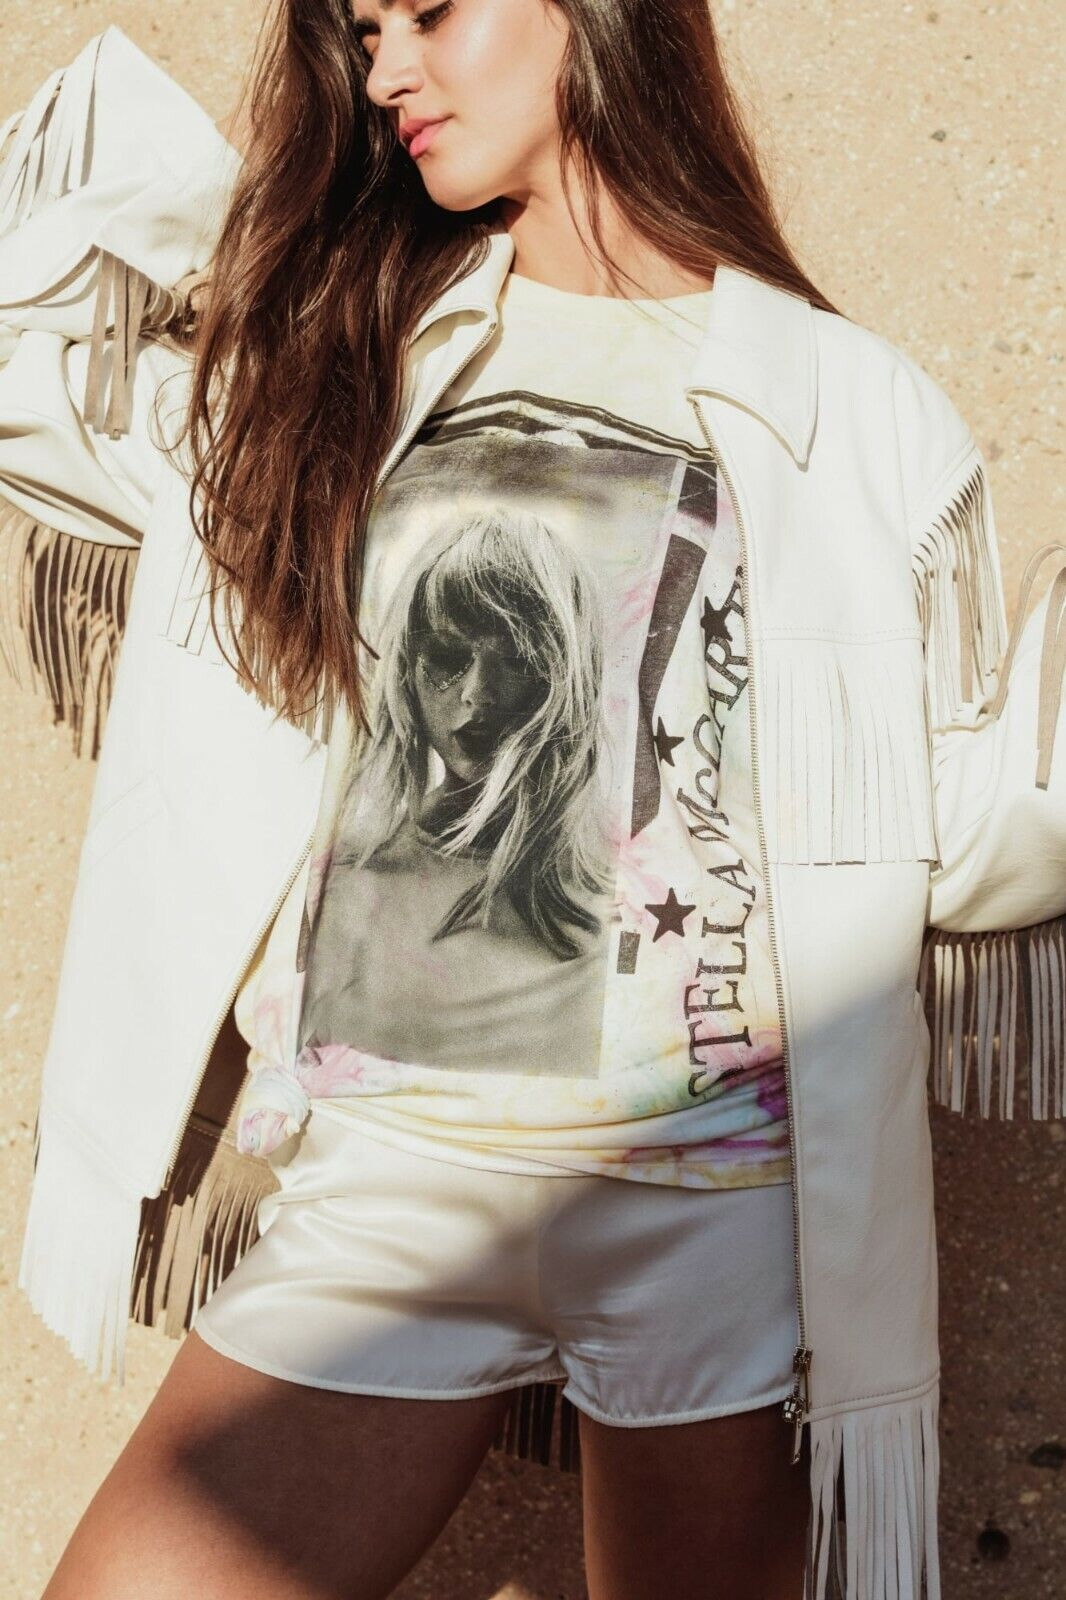 Taylor Swift X Stella McCartney LOVER Marble Dye Tee With Tracklist IN HAND